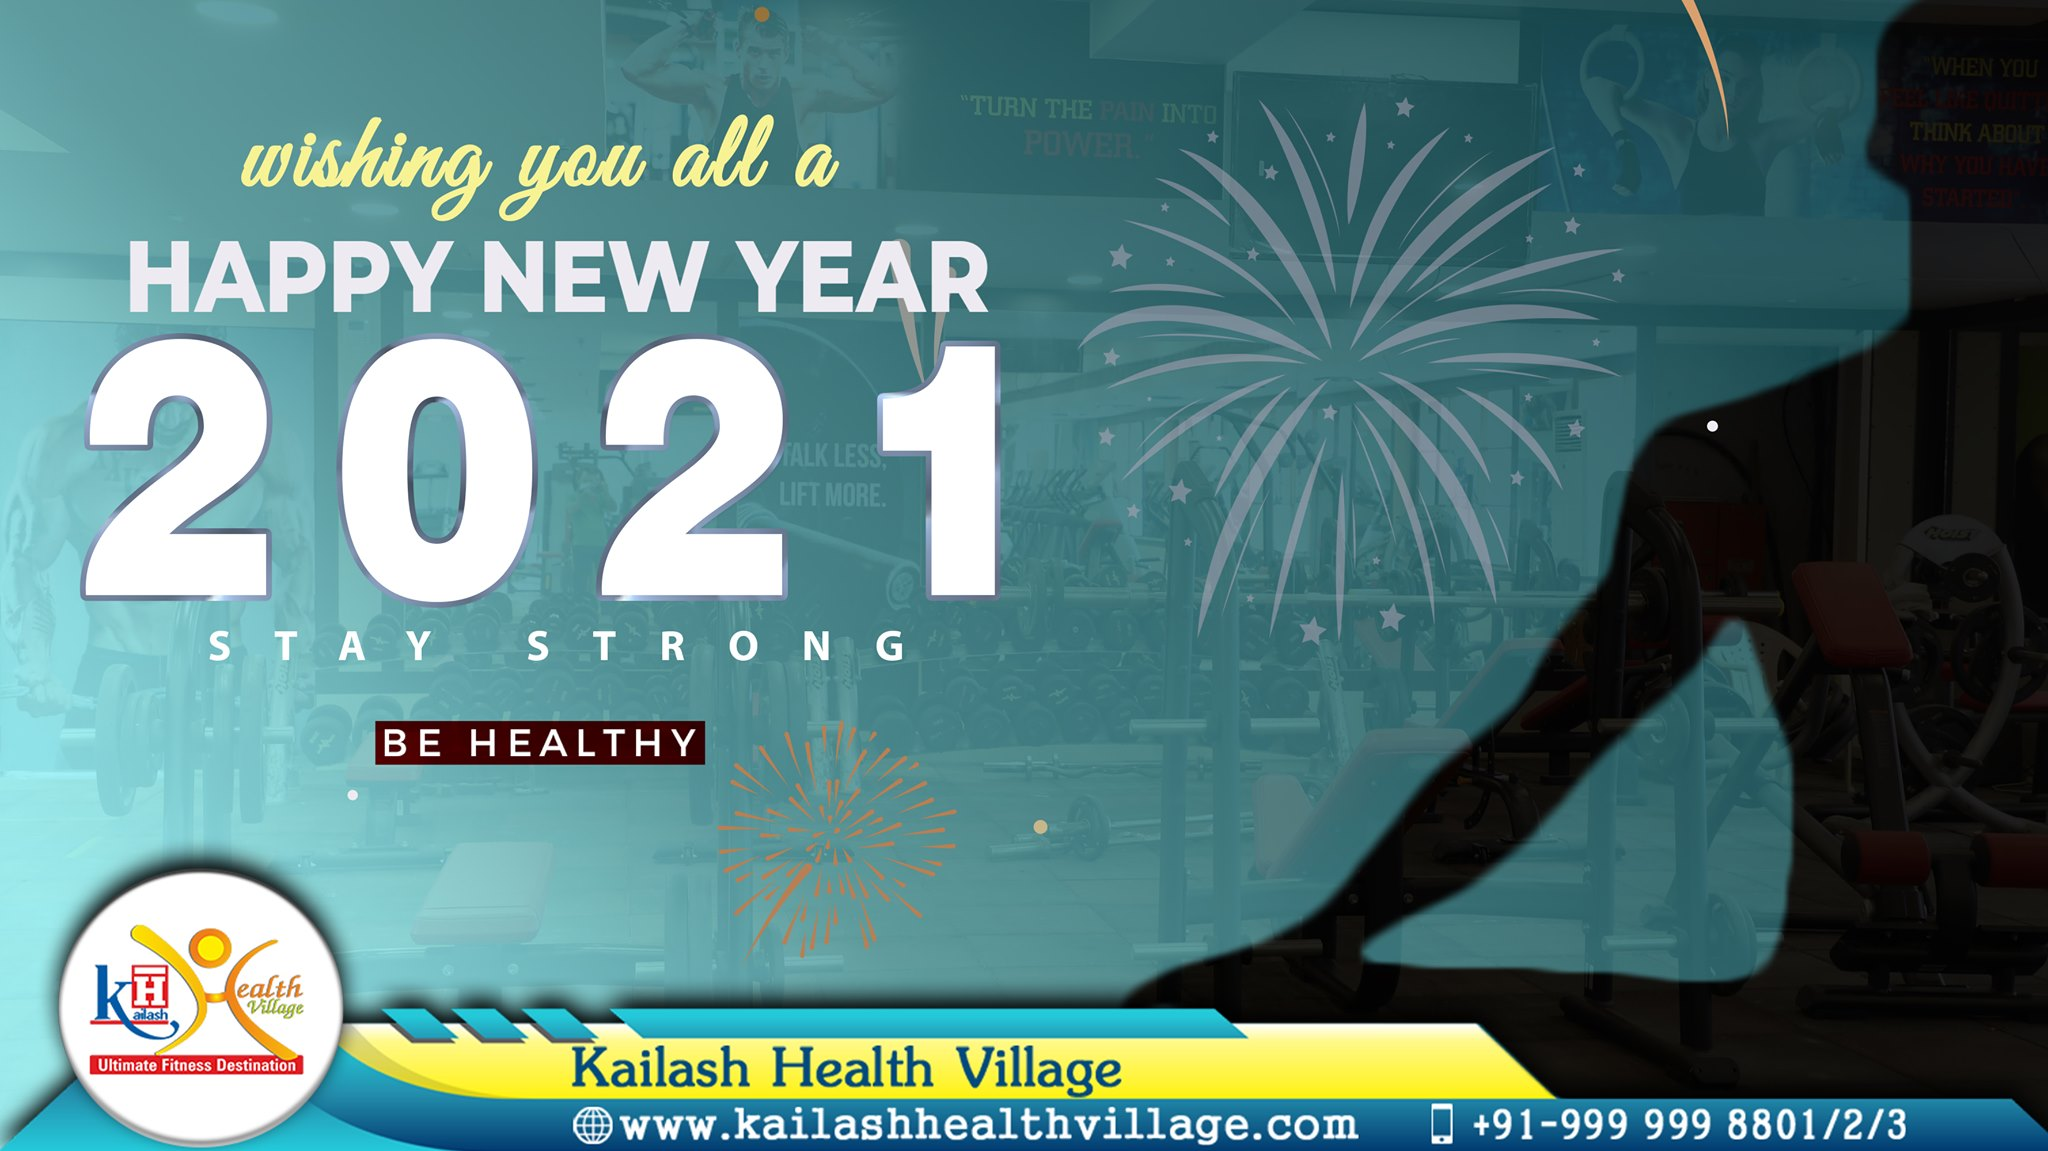 Kailash Health Village wishes you all a Happy & Prosperous New Year.